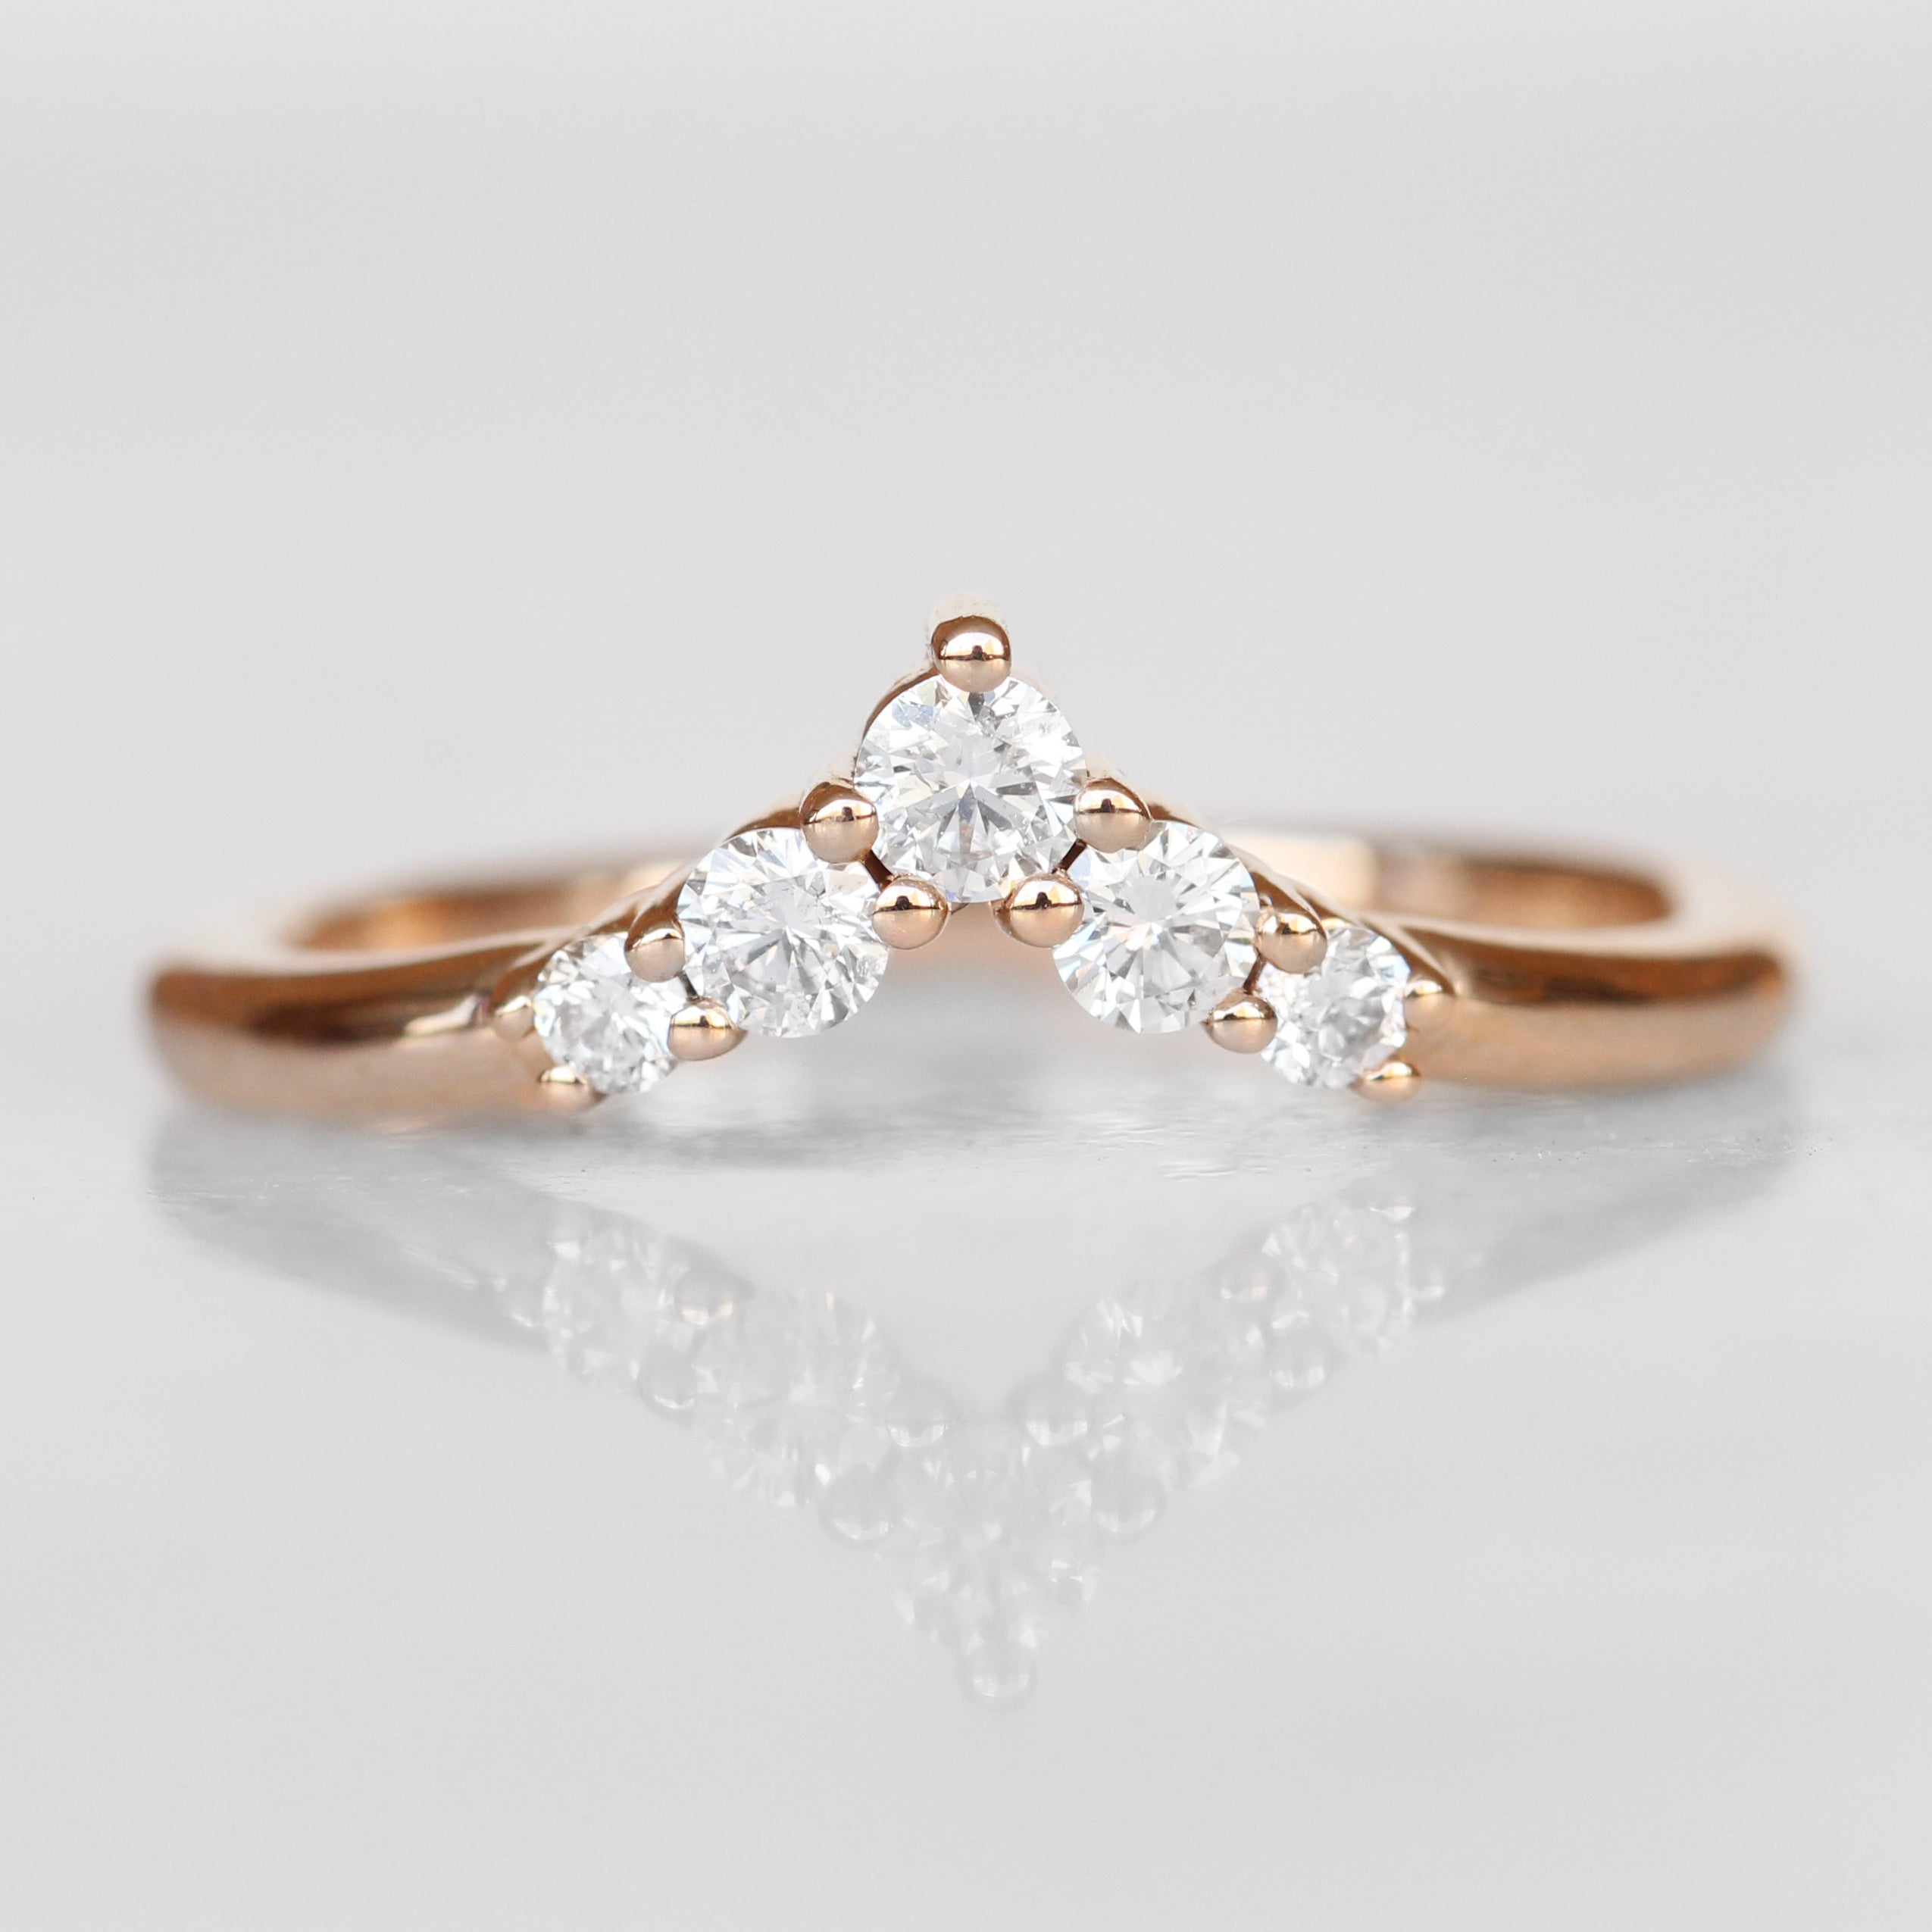 Rhiannon White Diamond Band - Contour Point V Shape Diamond Band - Gold of choice - Salt & Pepper Celestial Diamond Engagement Rings and Wedding Bands  by Midwinter Co.